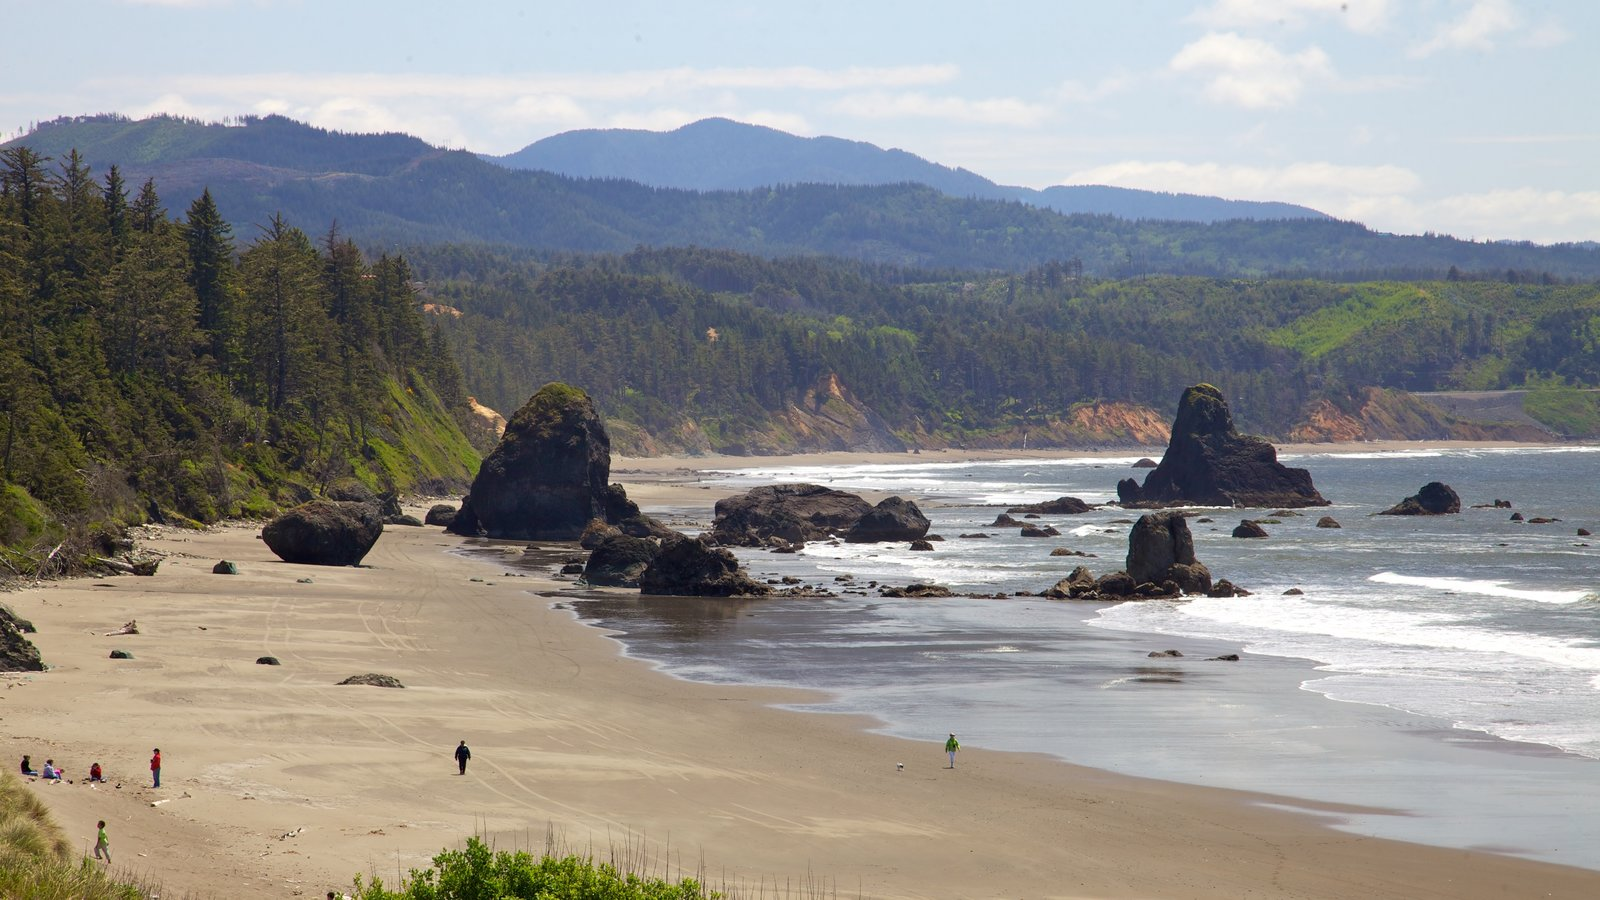 Port Orford featuring general coastal views, landscape views and a sandy beach